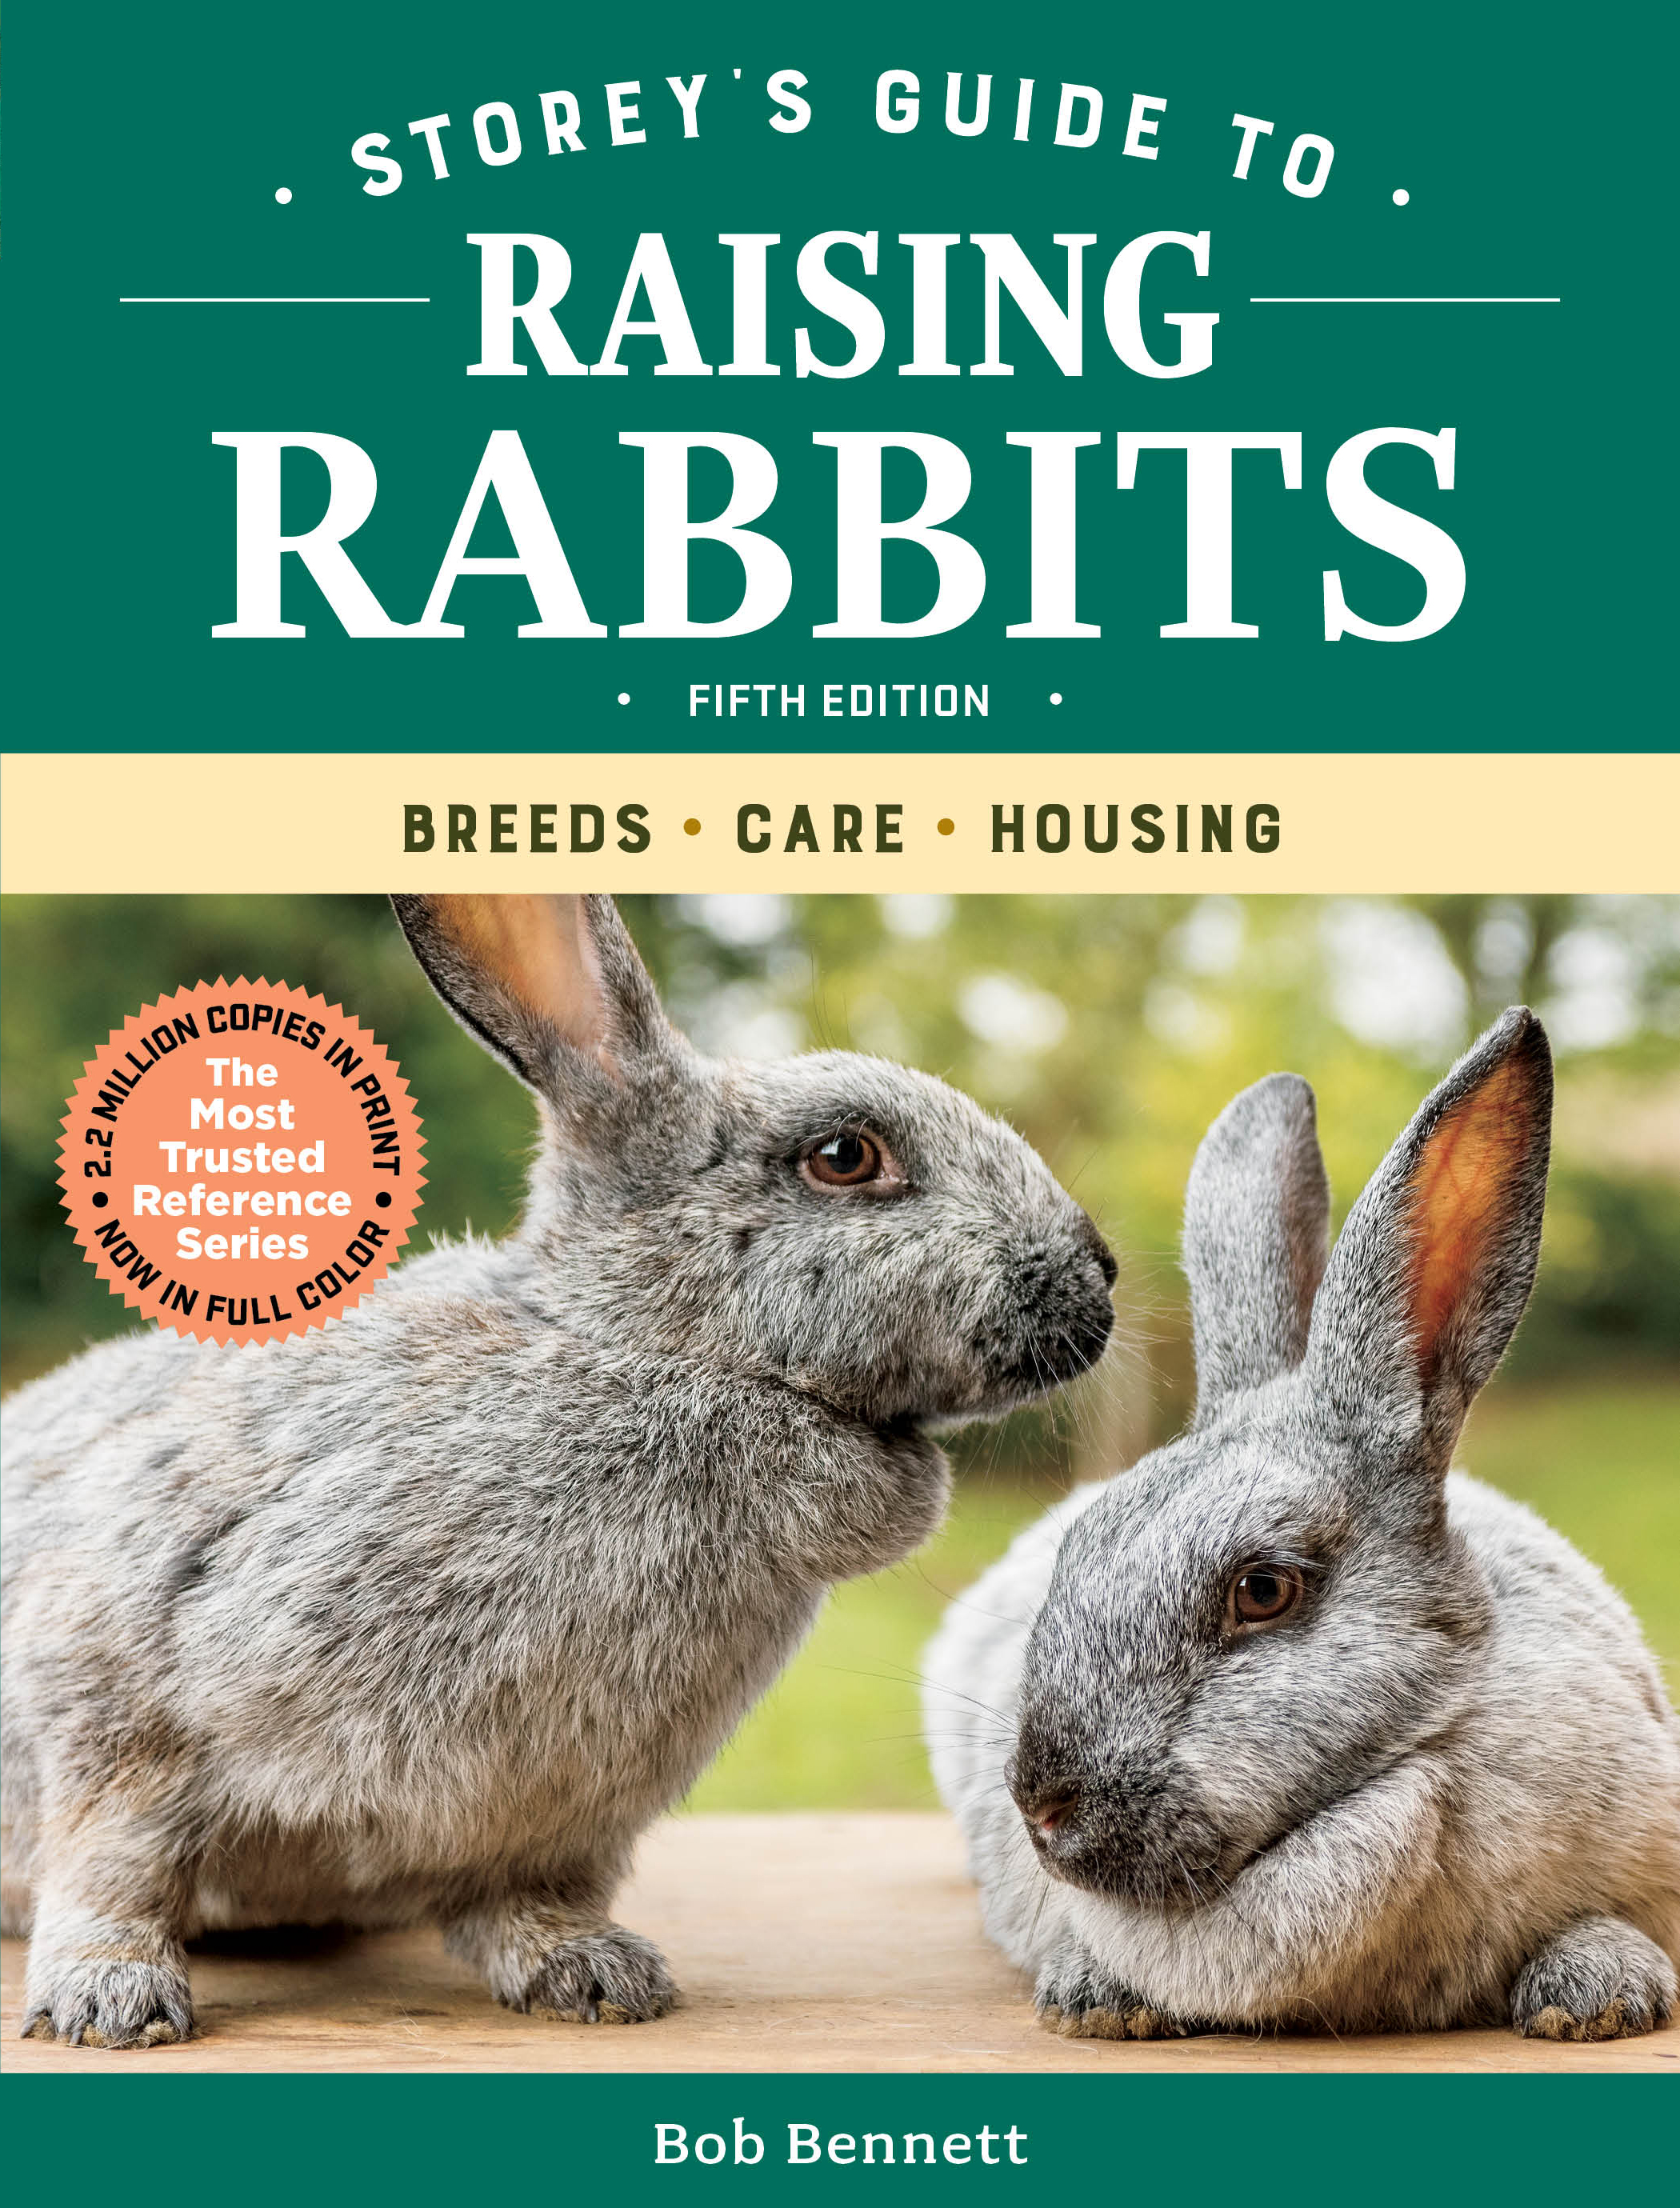 Storey's Guide to Raising Rabbits, 5th Edition Breeds, Care, Housing - Bob Bennett